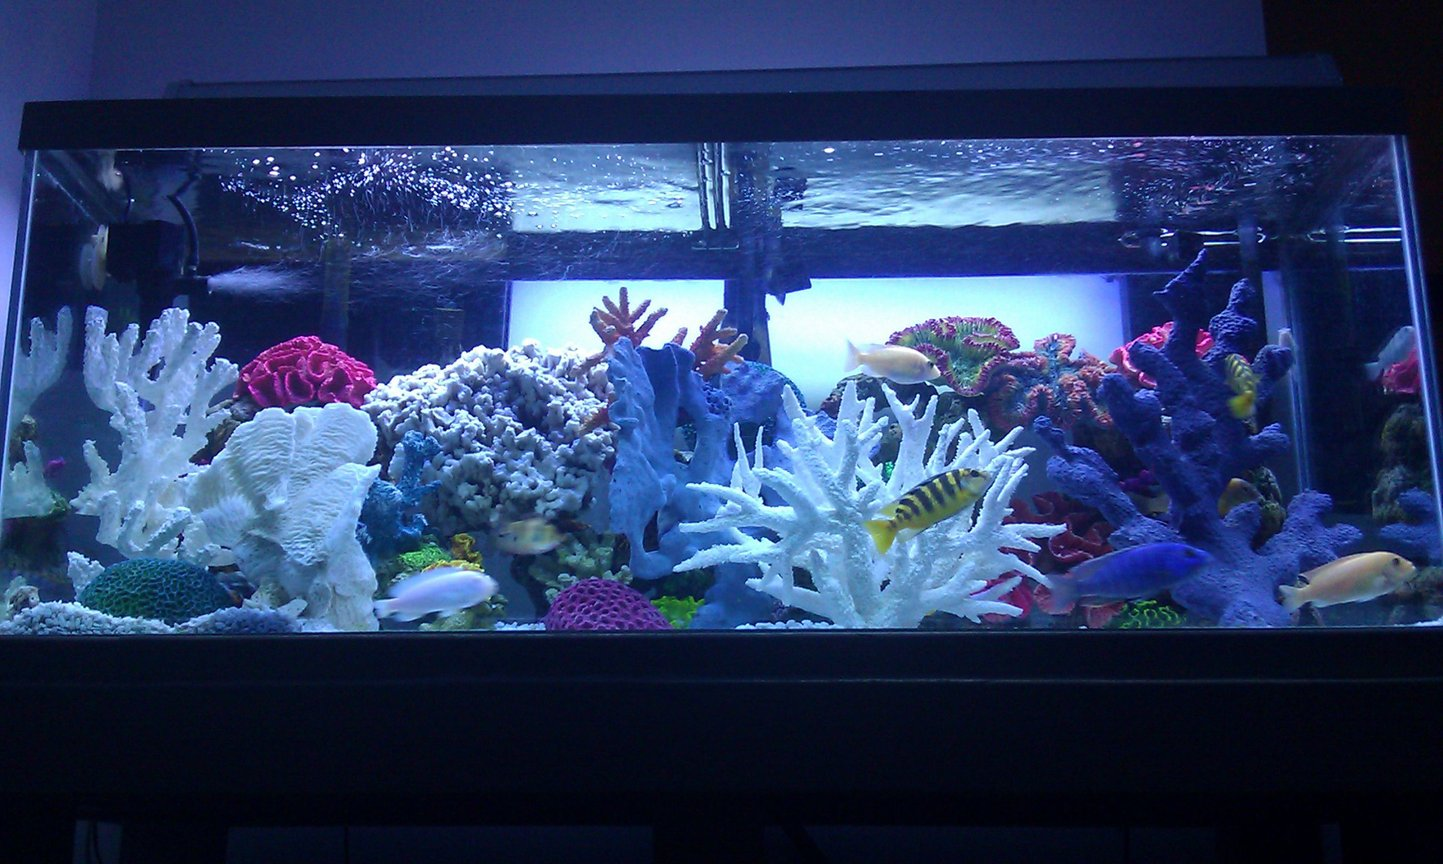 75 gallons freshwater fish tank (mostly fish and non-living decorations) - 75 gallon freshwater African Cichlid aquarium. Freshwater/saltwater theme!